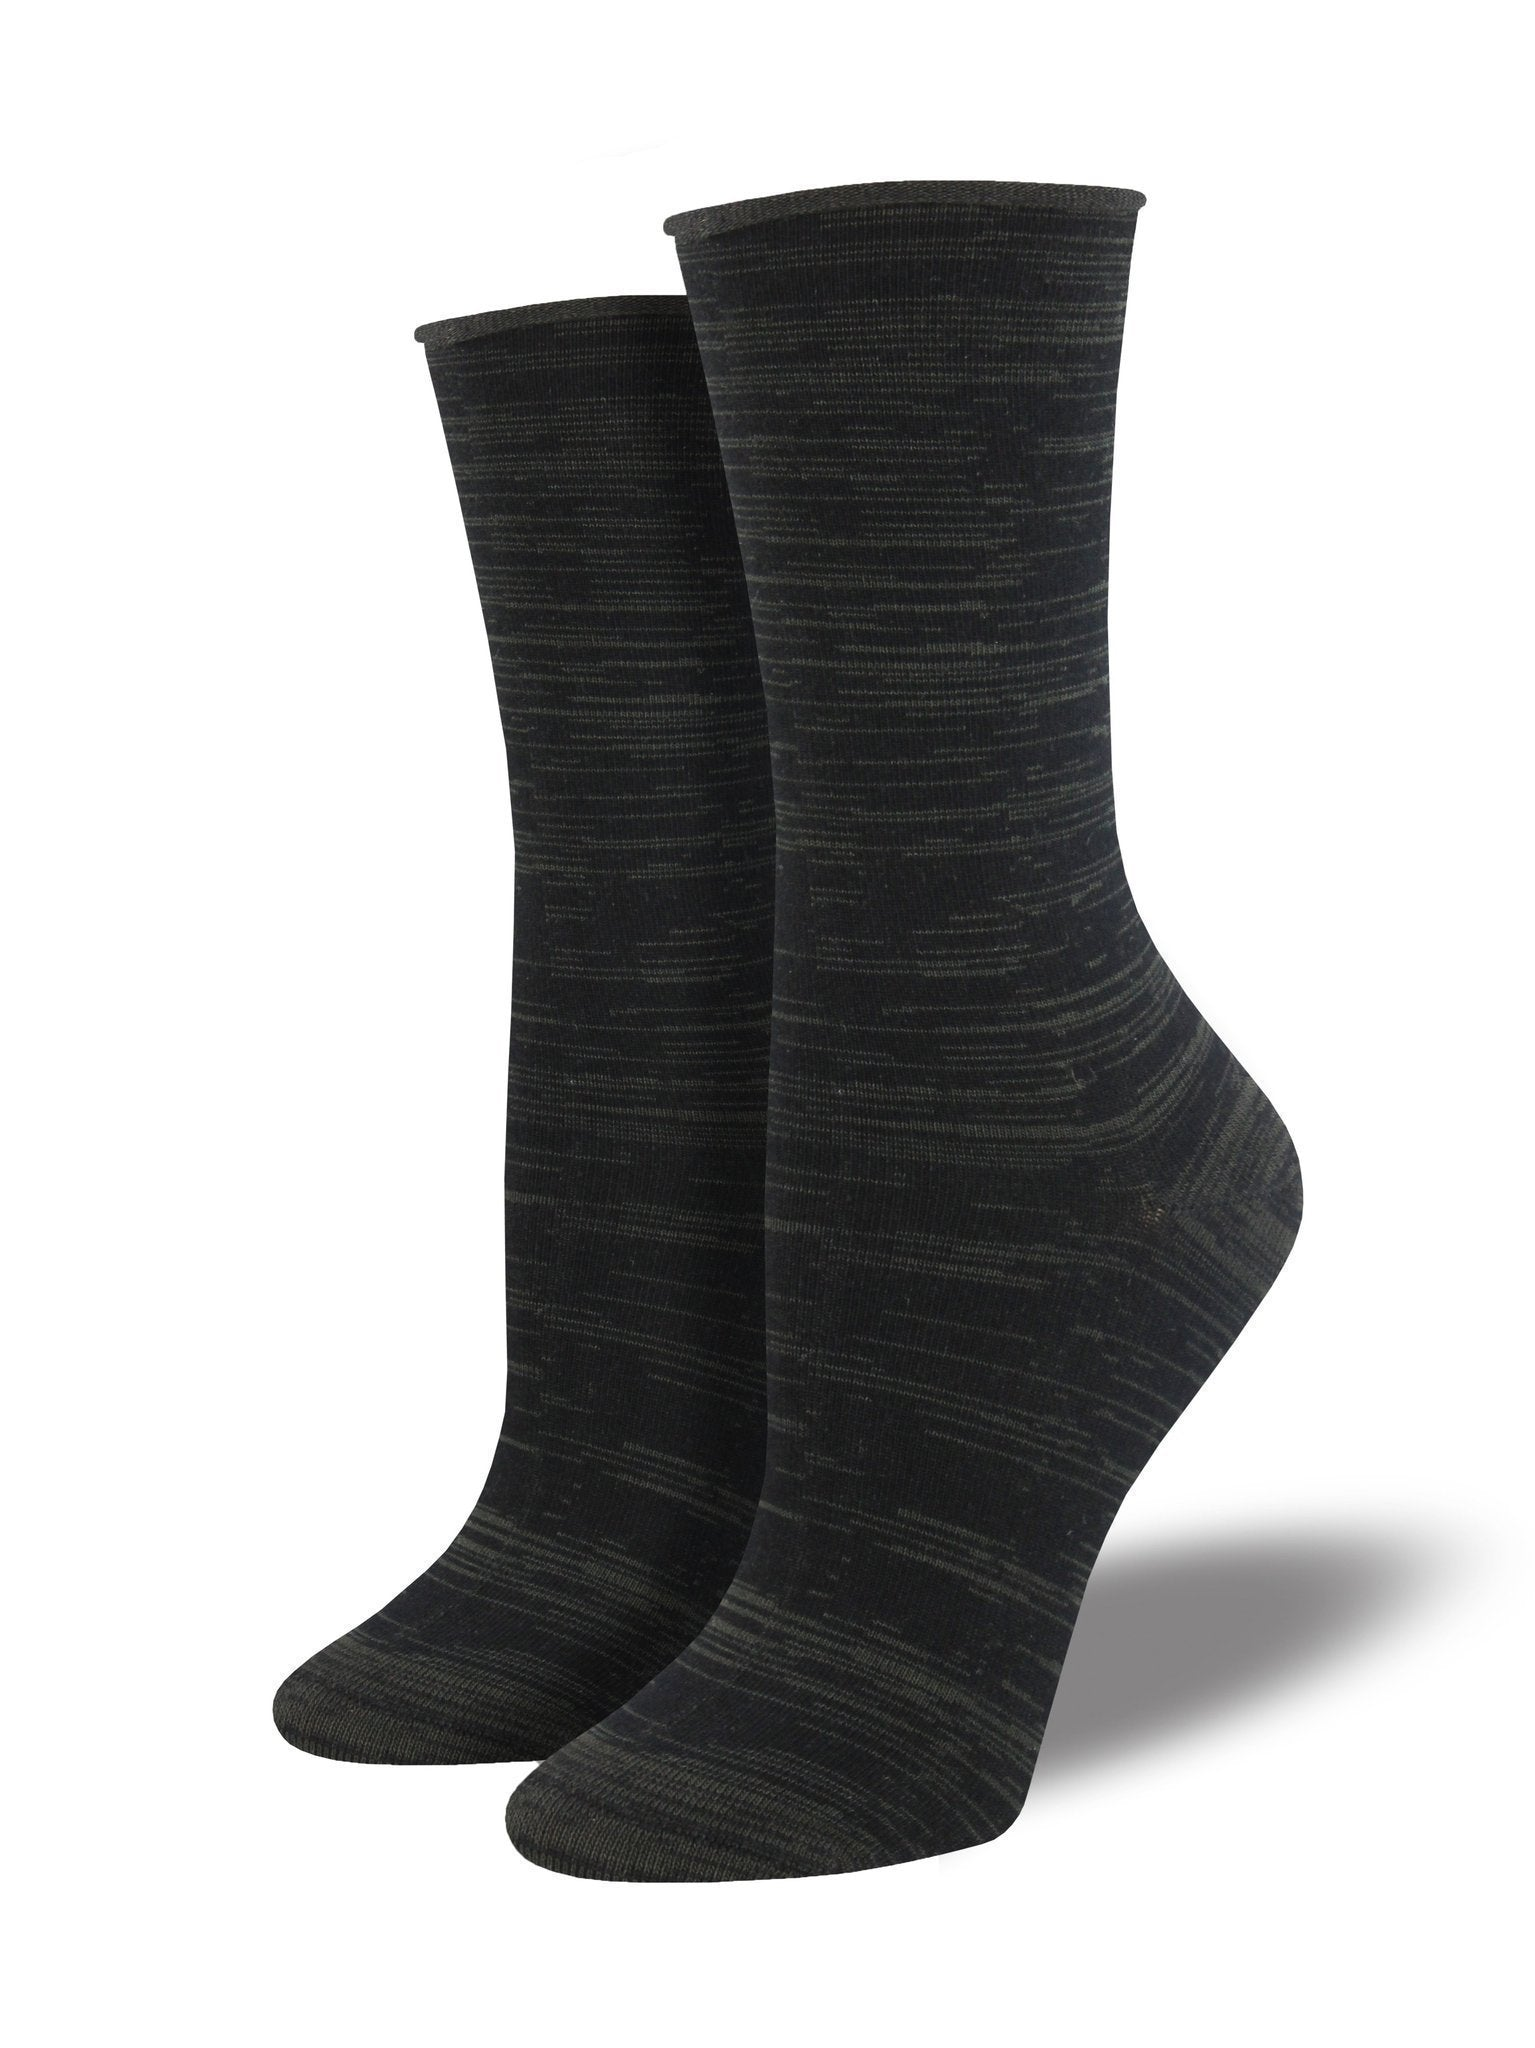 Socksmith - Bamboo Space Dye Roll Top Crew Socks | Women's - Knock Your Socks Off